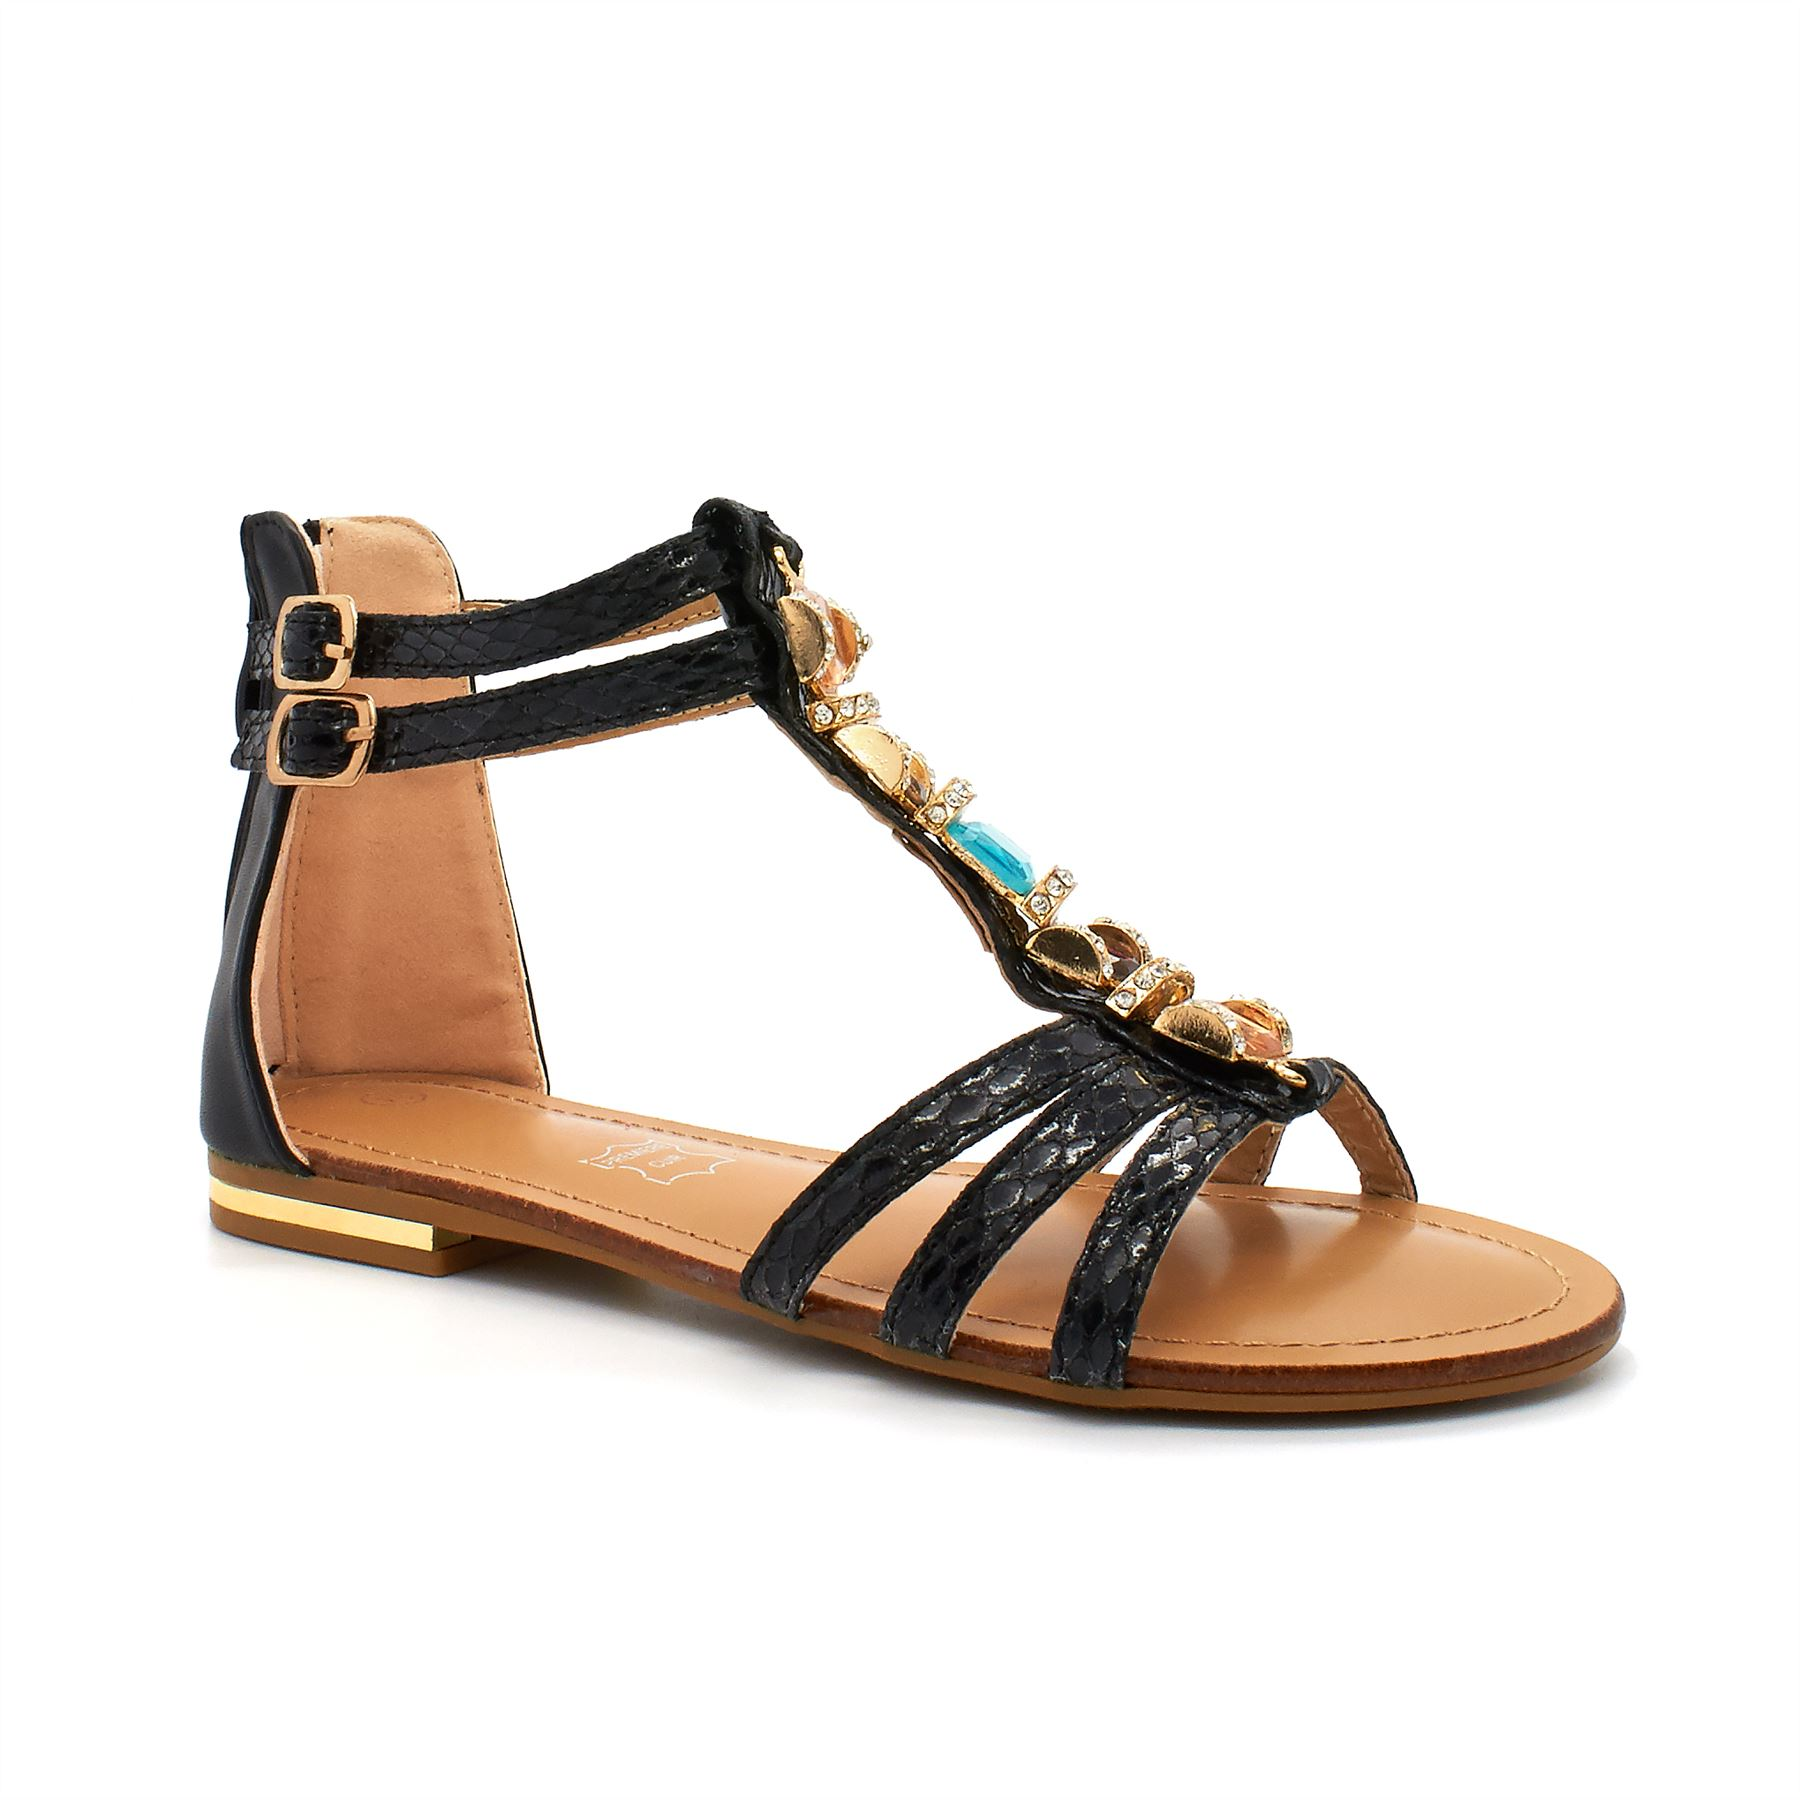 Save up to 70% on cute shoes, boots & sandals for girls on zulily. Find adorable flats, sporty sneakers & more in casual, formal or comfy styles for girls.